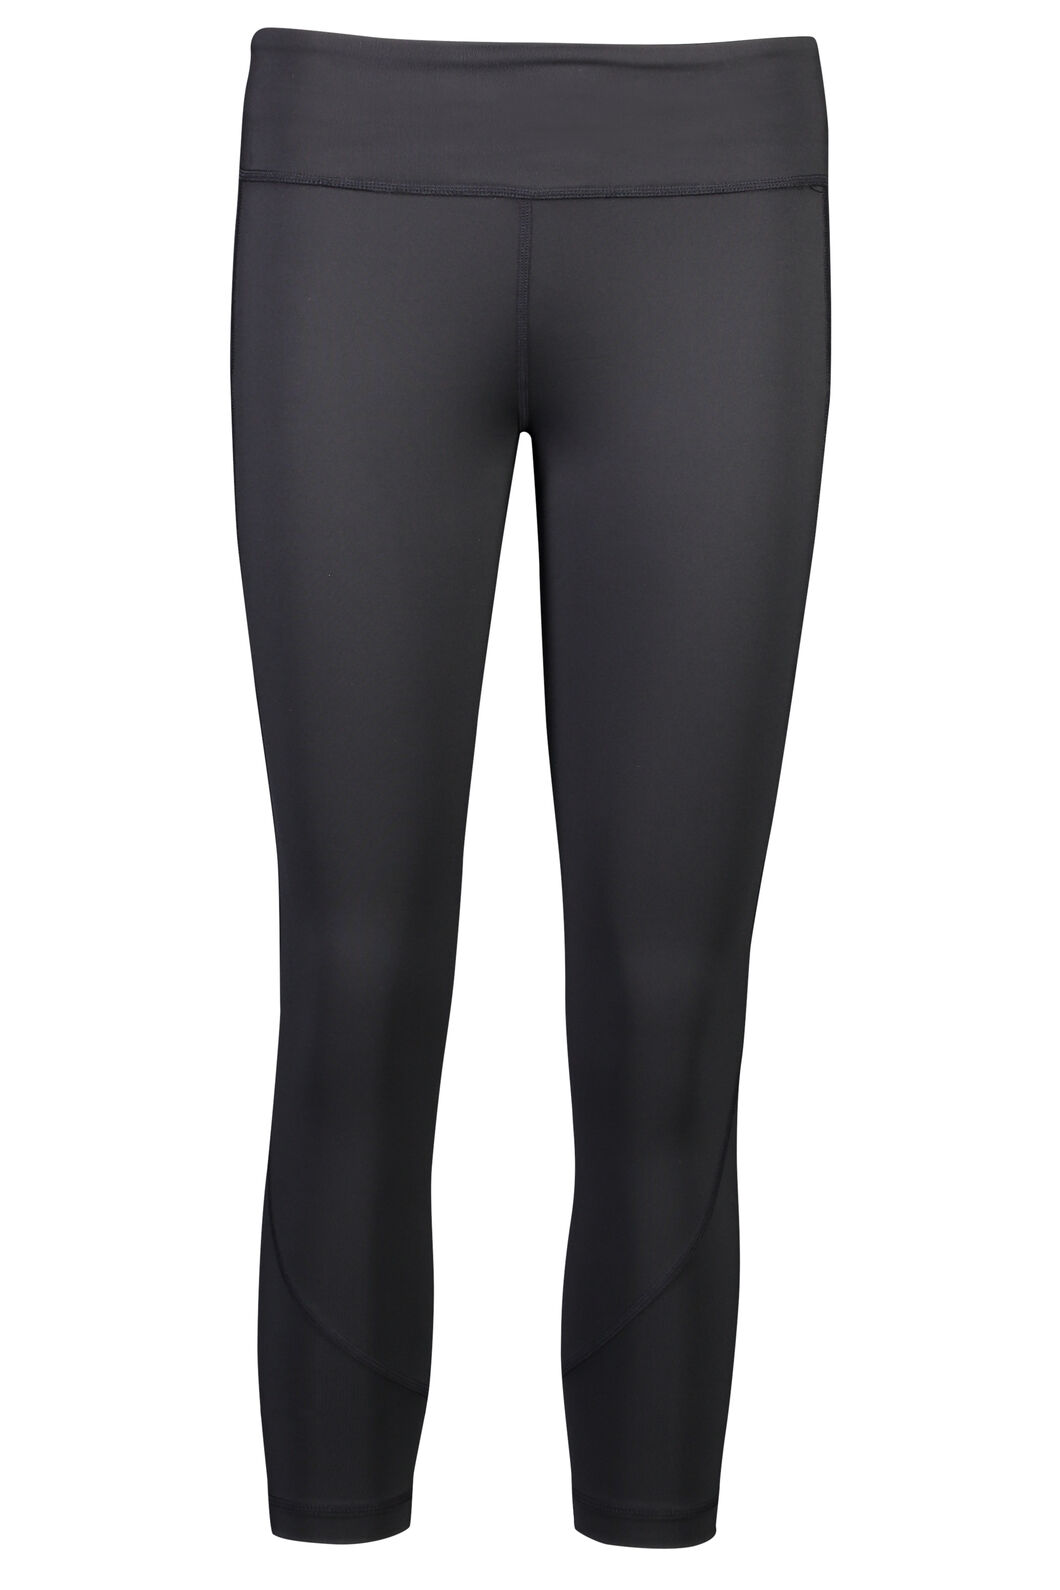 Performance 7/8 Tights - Women's, Black, hi-res